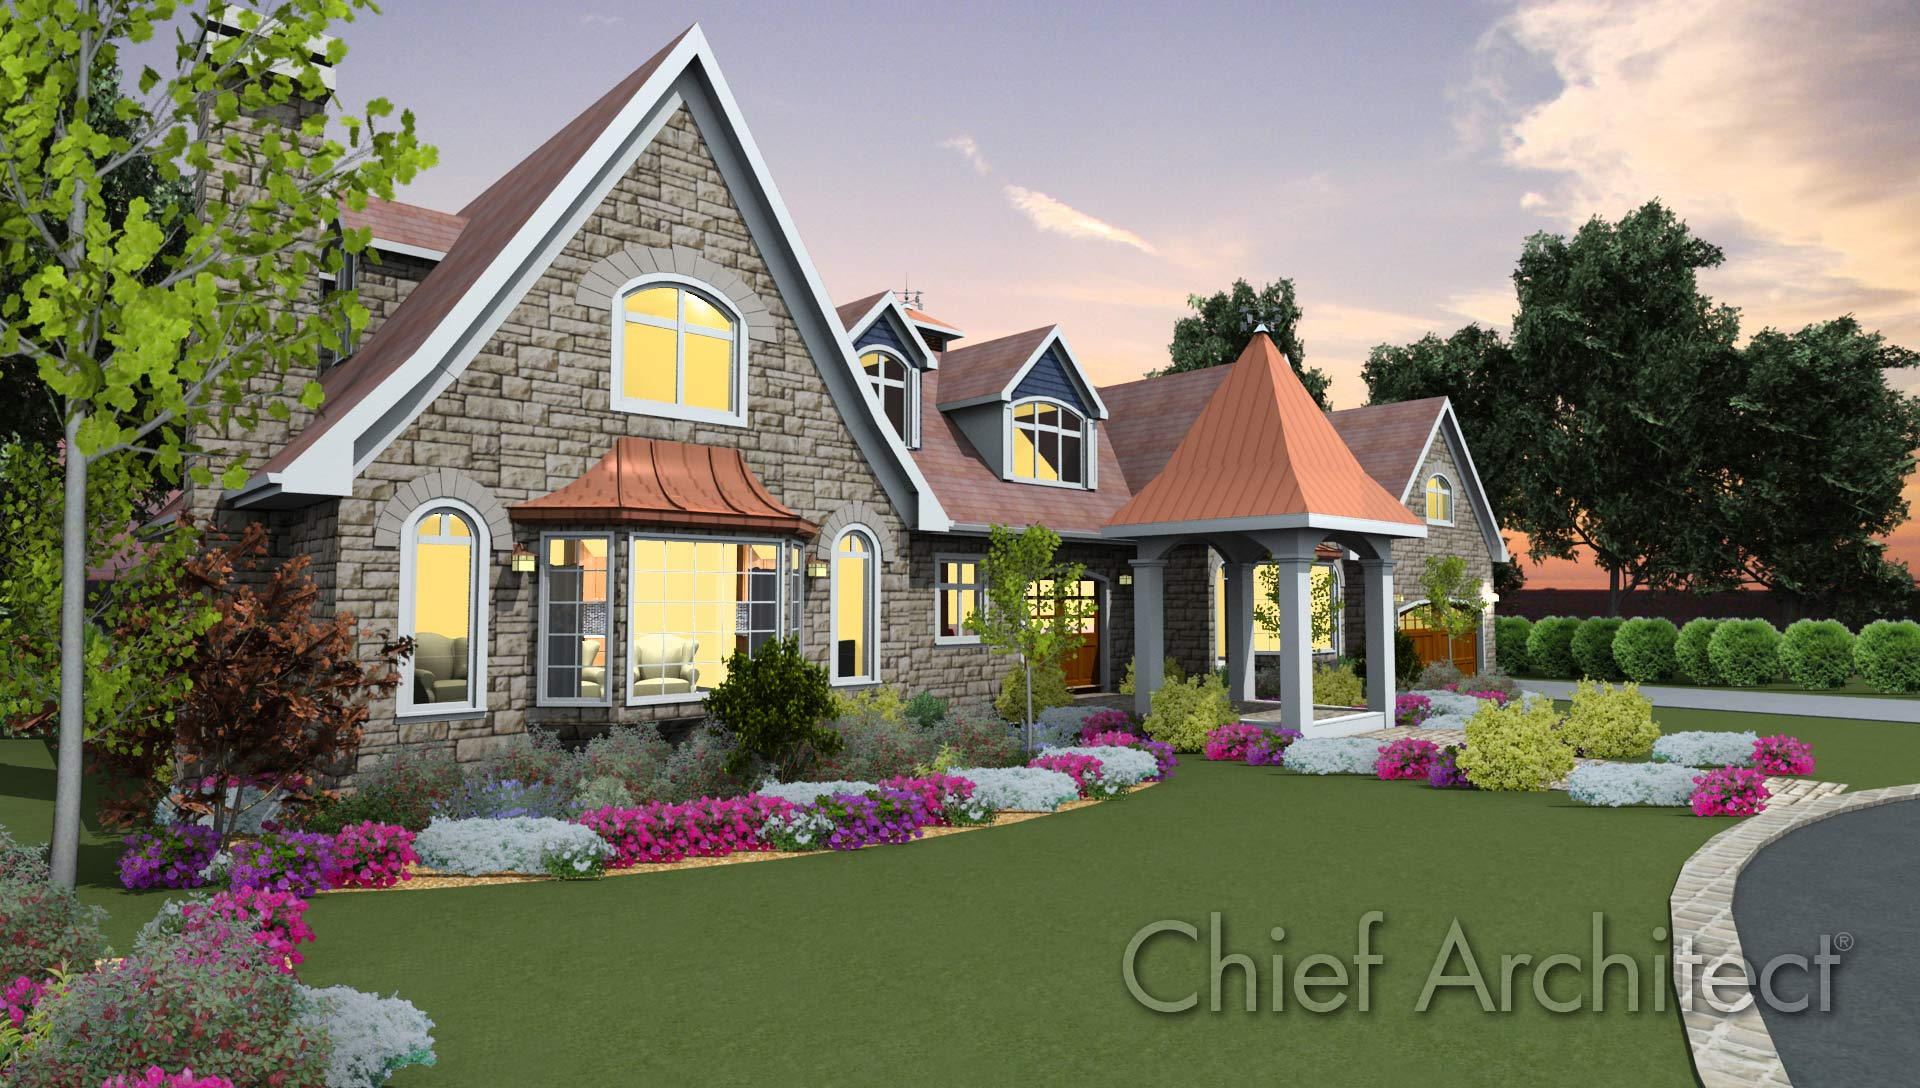 Chief Architect Home Design - Samples Gallery on outside of house wallpaper, outside of house drawing, outside of beach house, outside of house plans, out house design, cleaning design, outside of house decorations, inside of house design, dining room design,